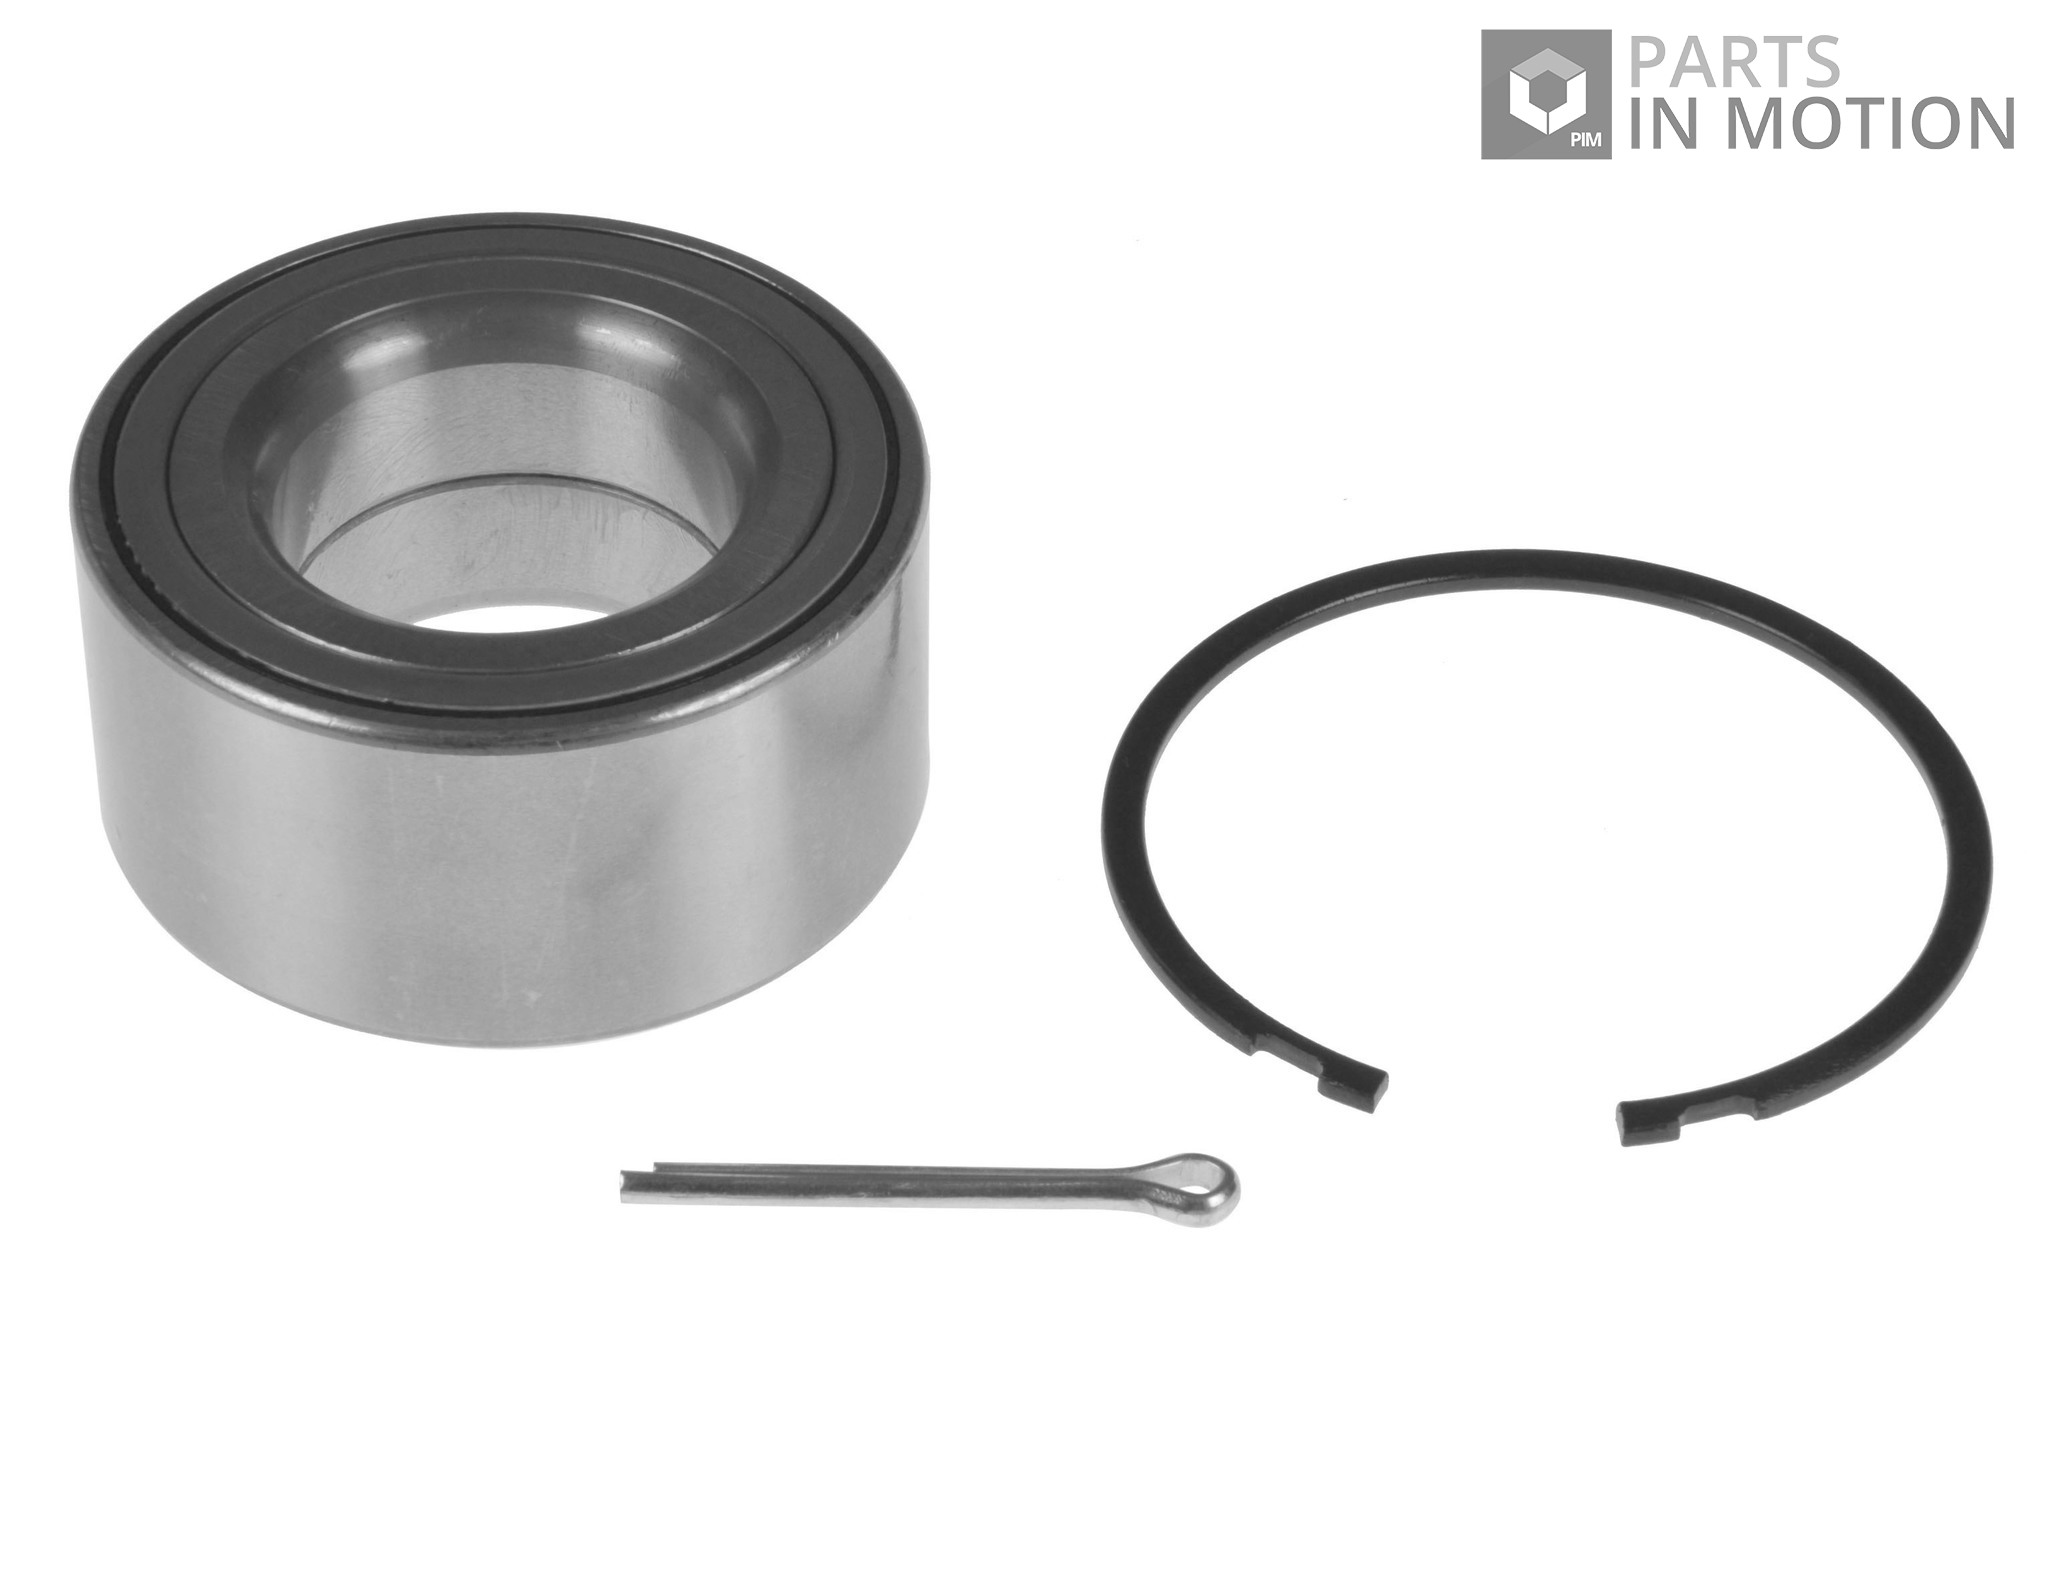 Wheel Bearing Kit fits NISSAN ALMERA N16 1.8 Front Left or Right 2000 on QG18DE